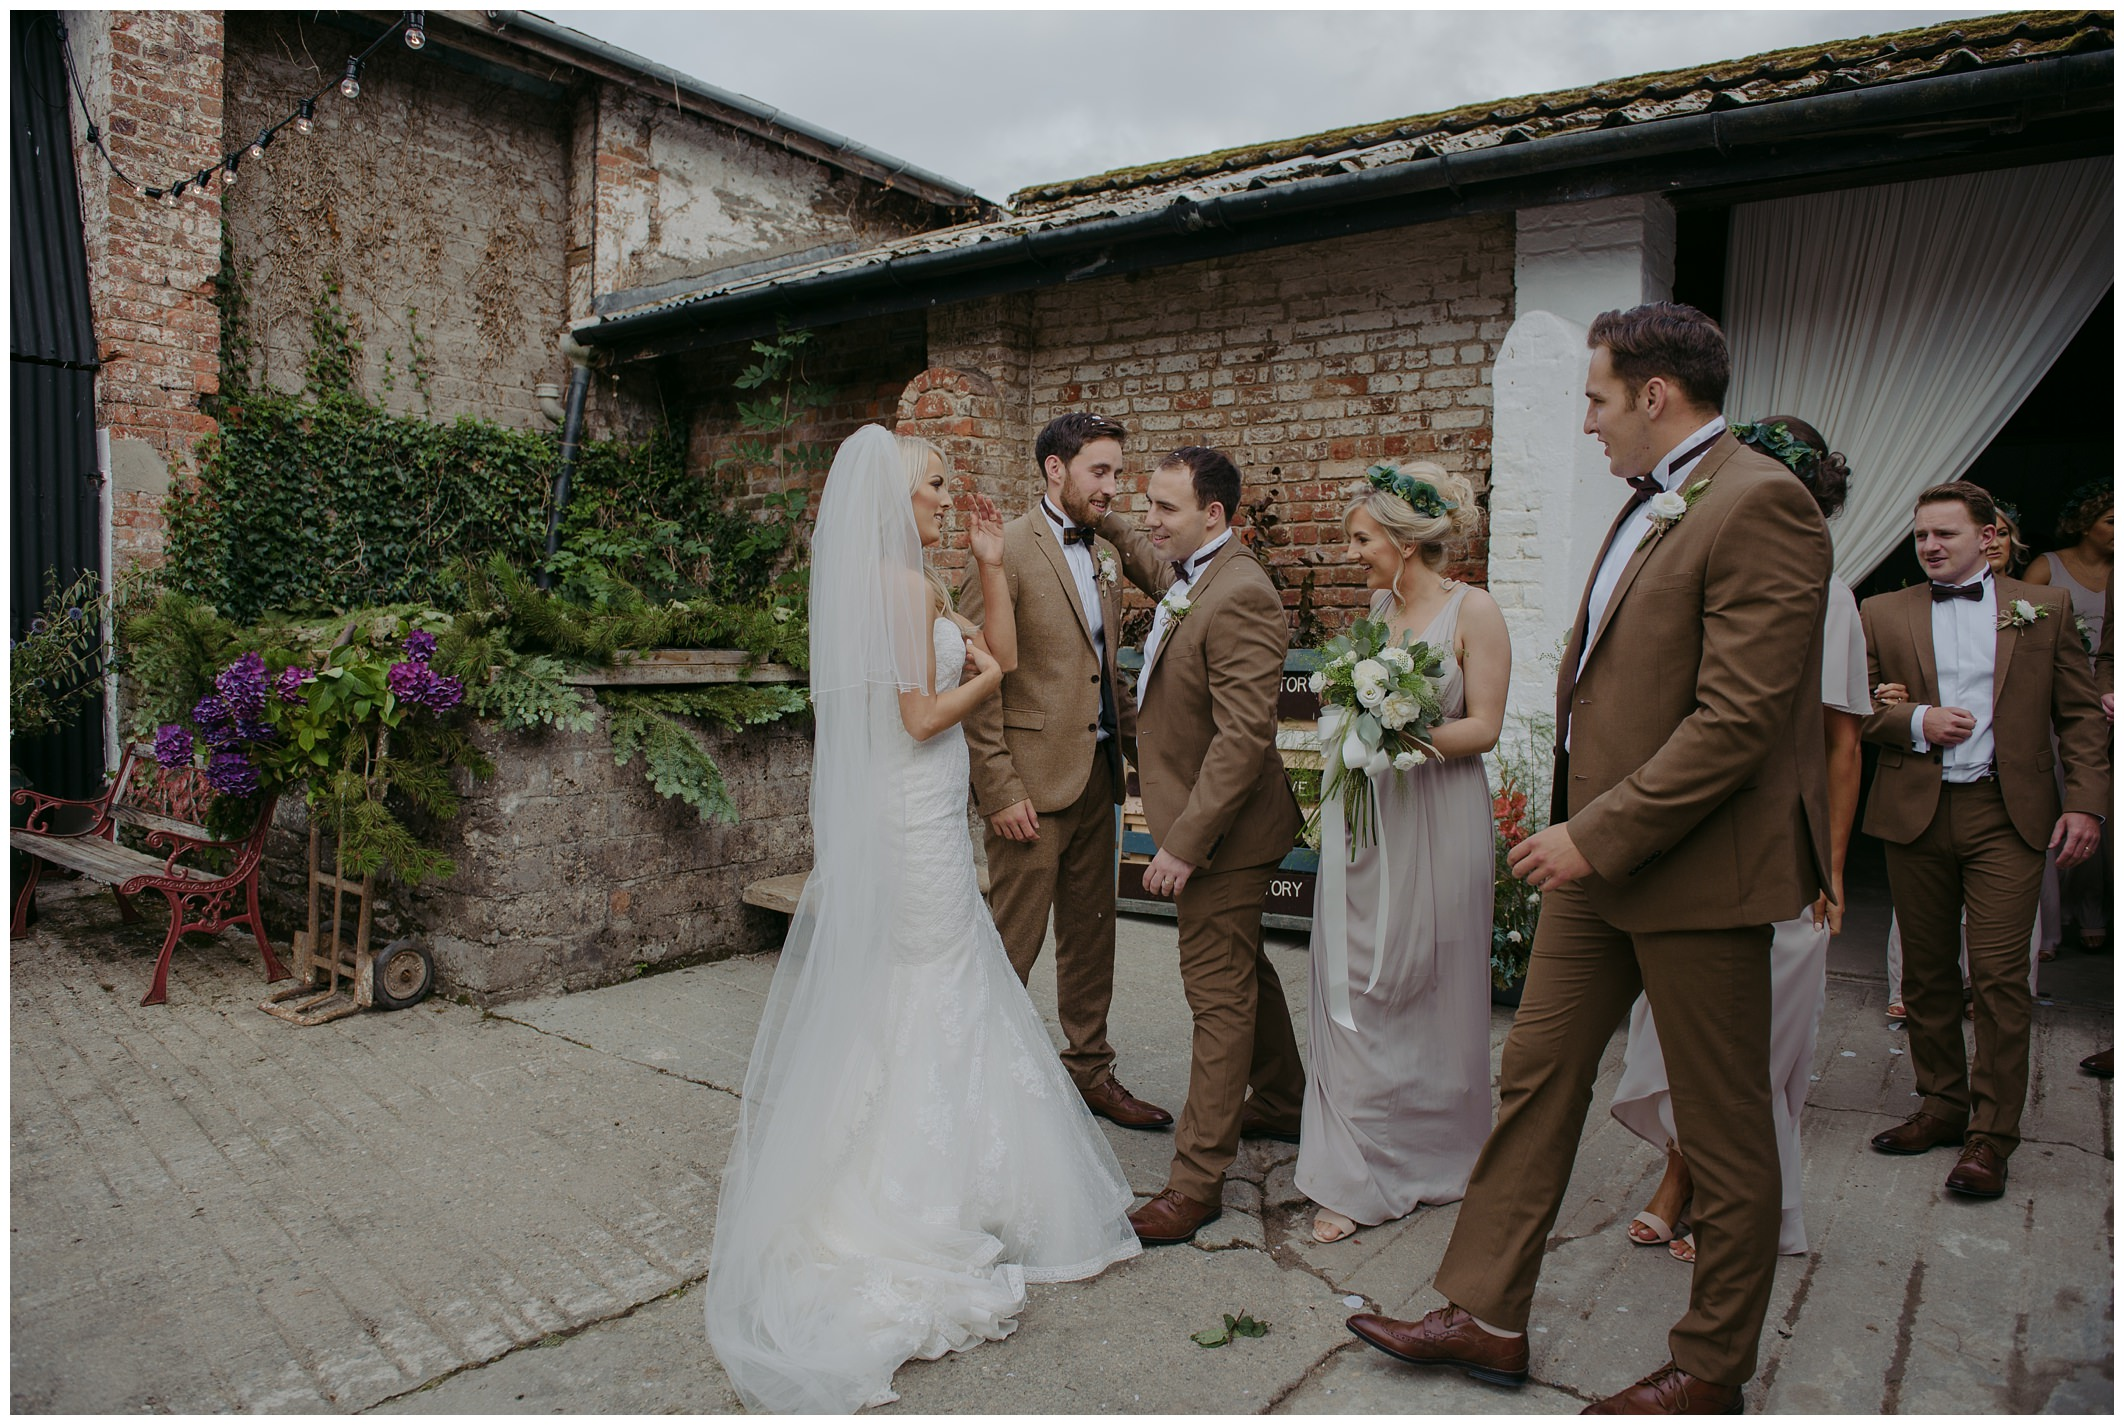 tara_neil_the_mill_alternative_quirky_wedding_jude_browne_photography_0107.jpg